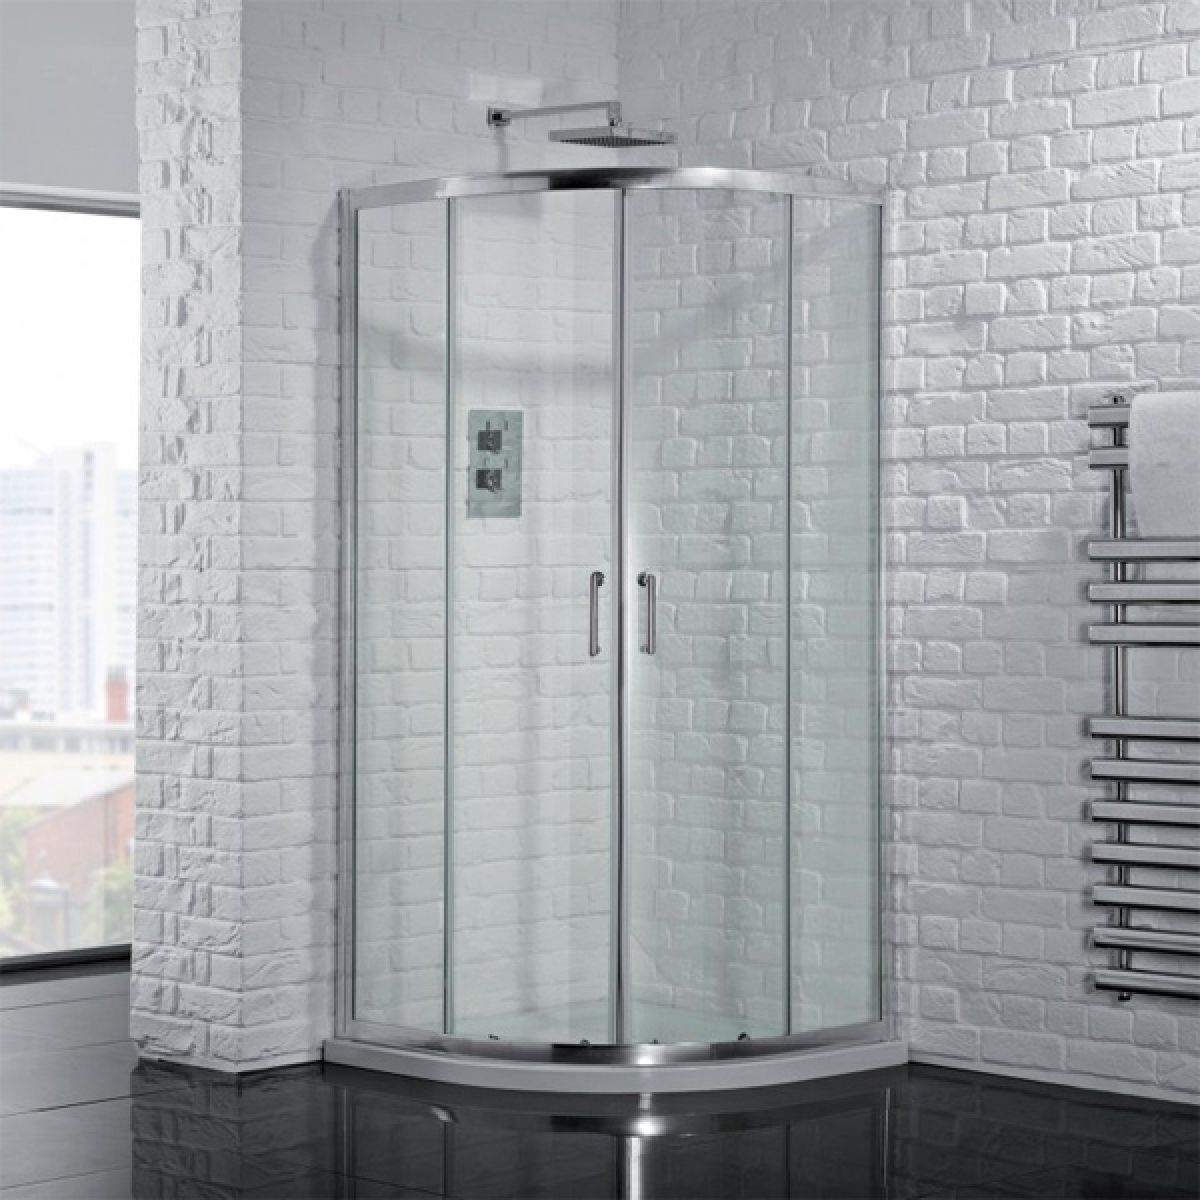 Aquadart Venturi 6 Double Door Quadrant Shower Enclosure